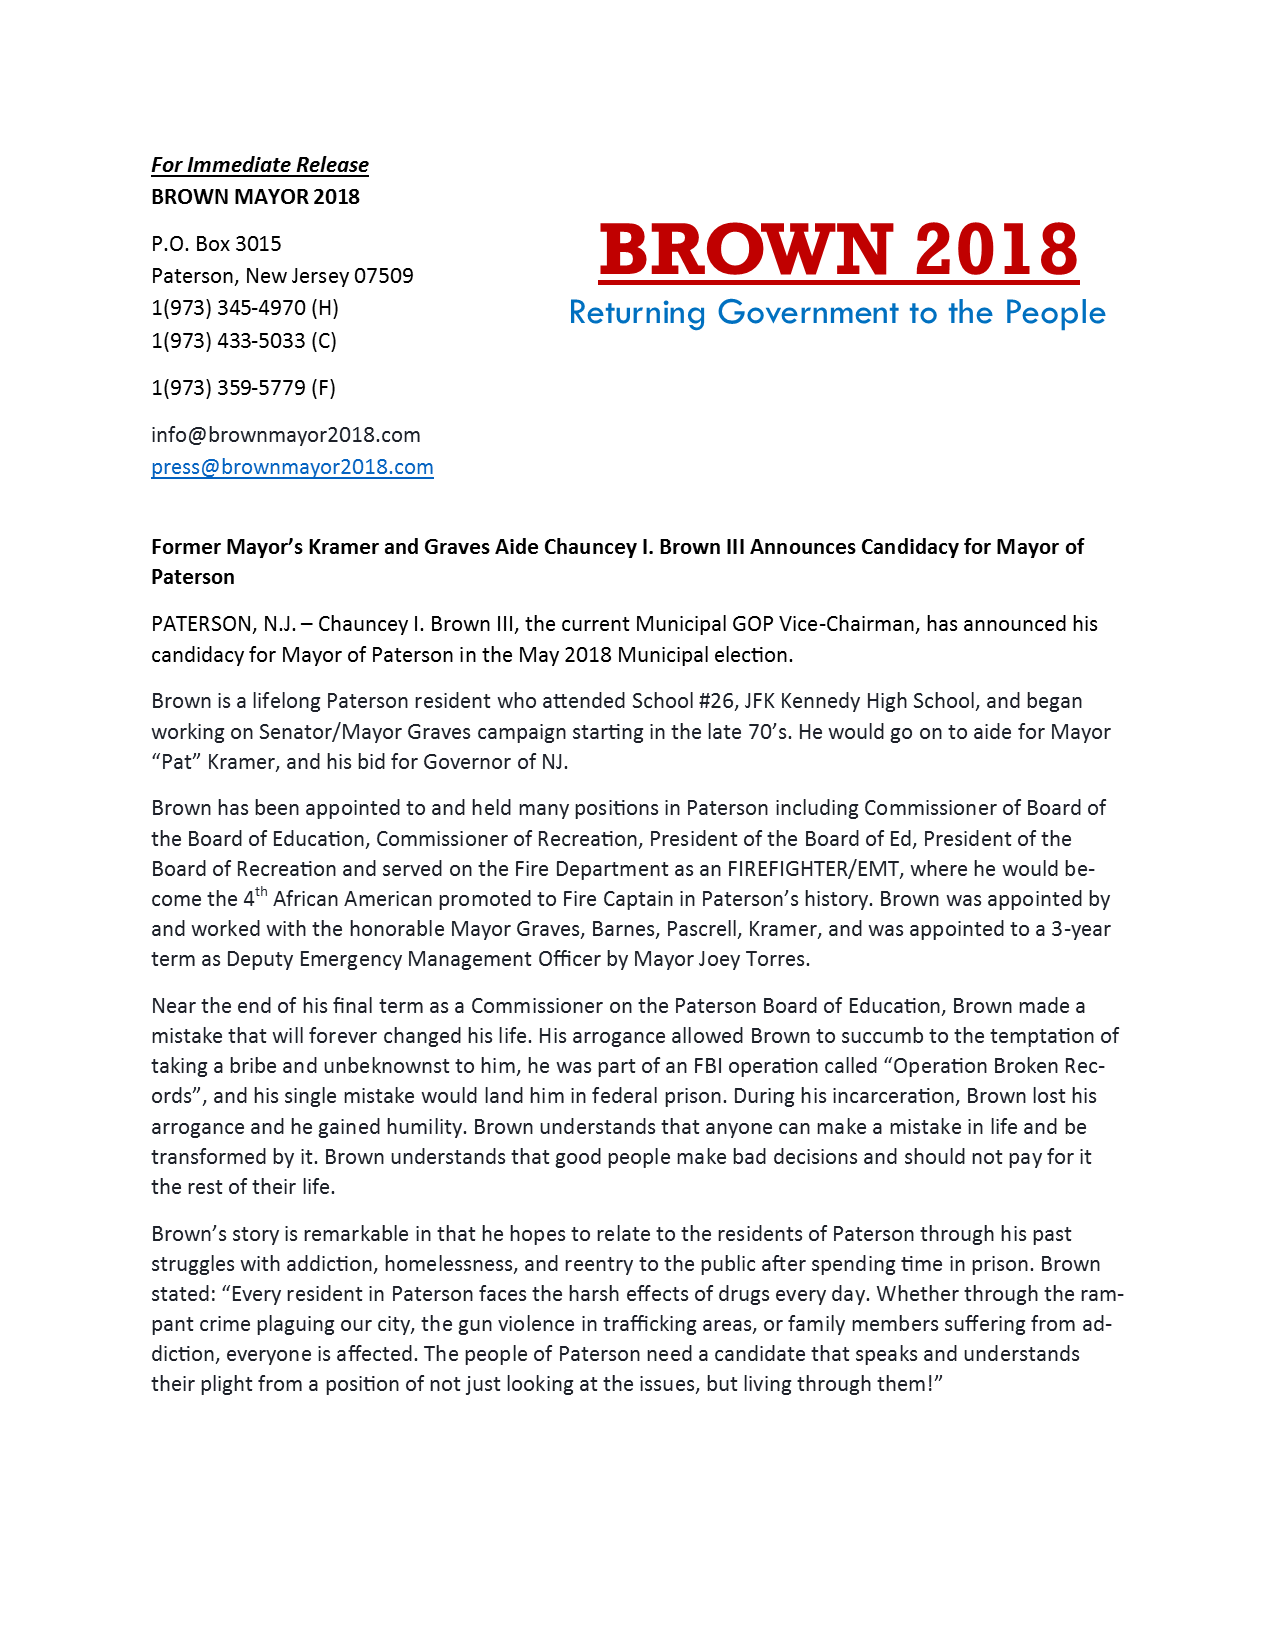 068312eecc710869ed48_Brown_Mayor_2018_1.jpg